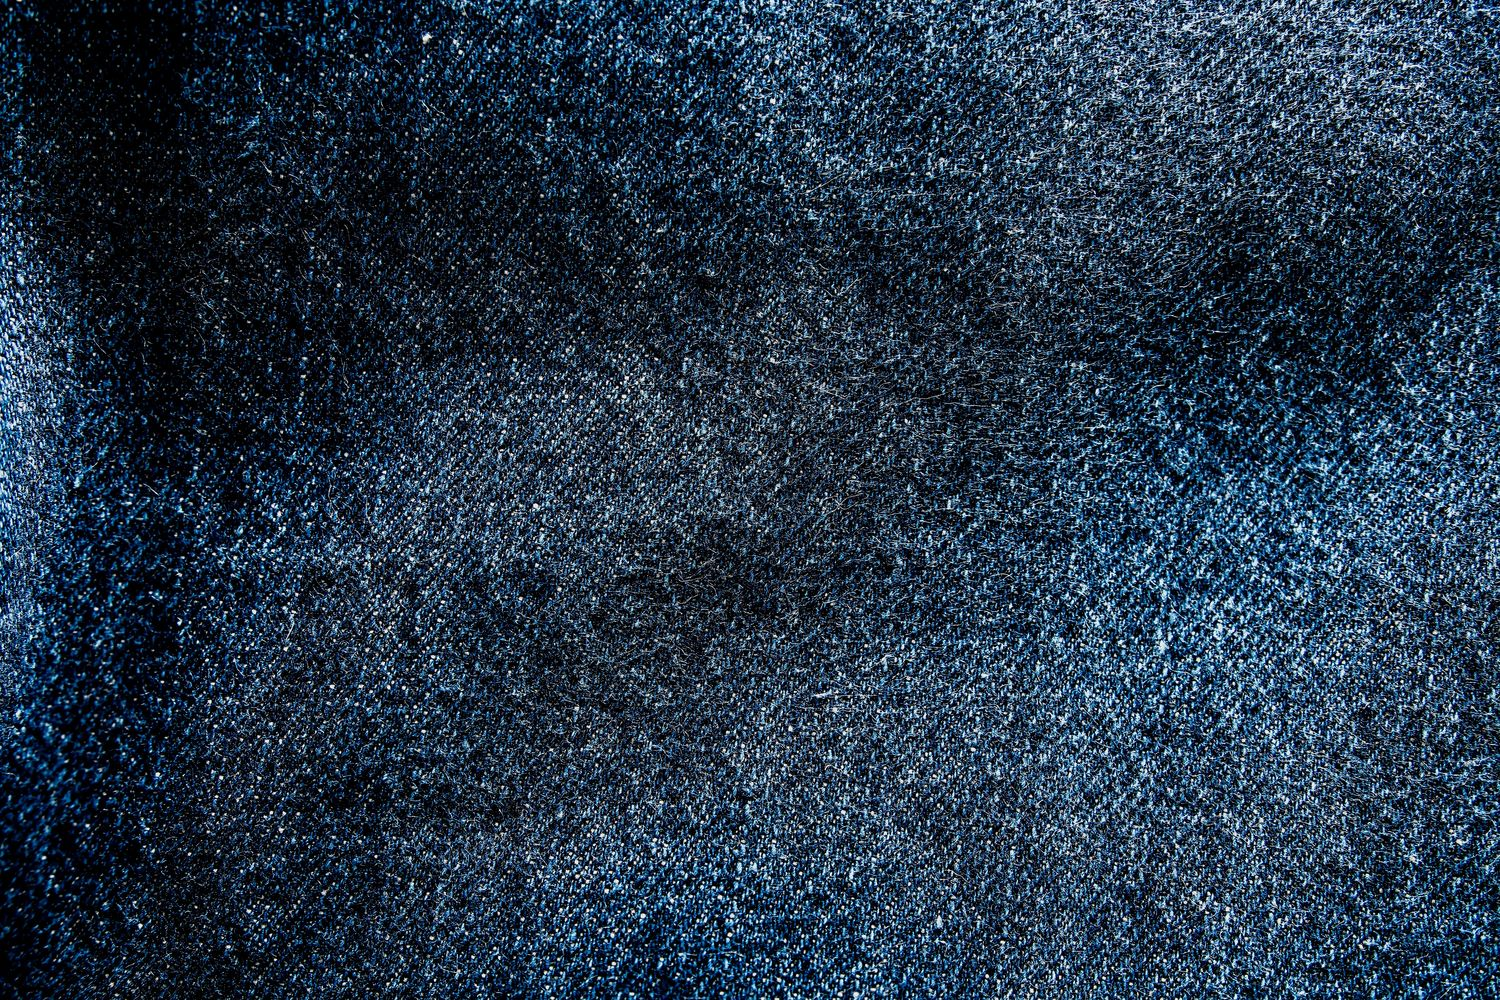 Deep indigo is a favourite with raw denim enthusiasts